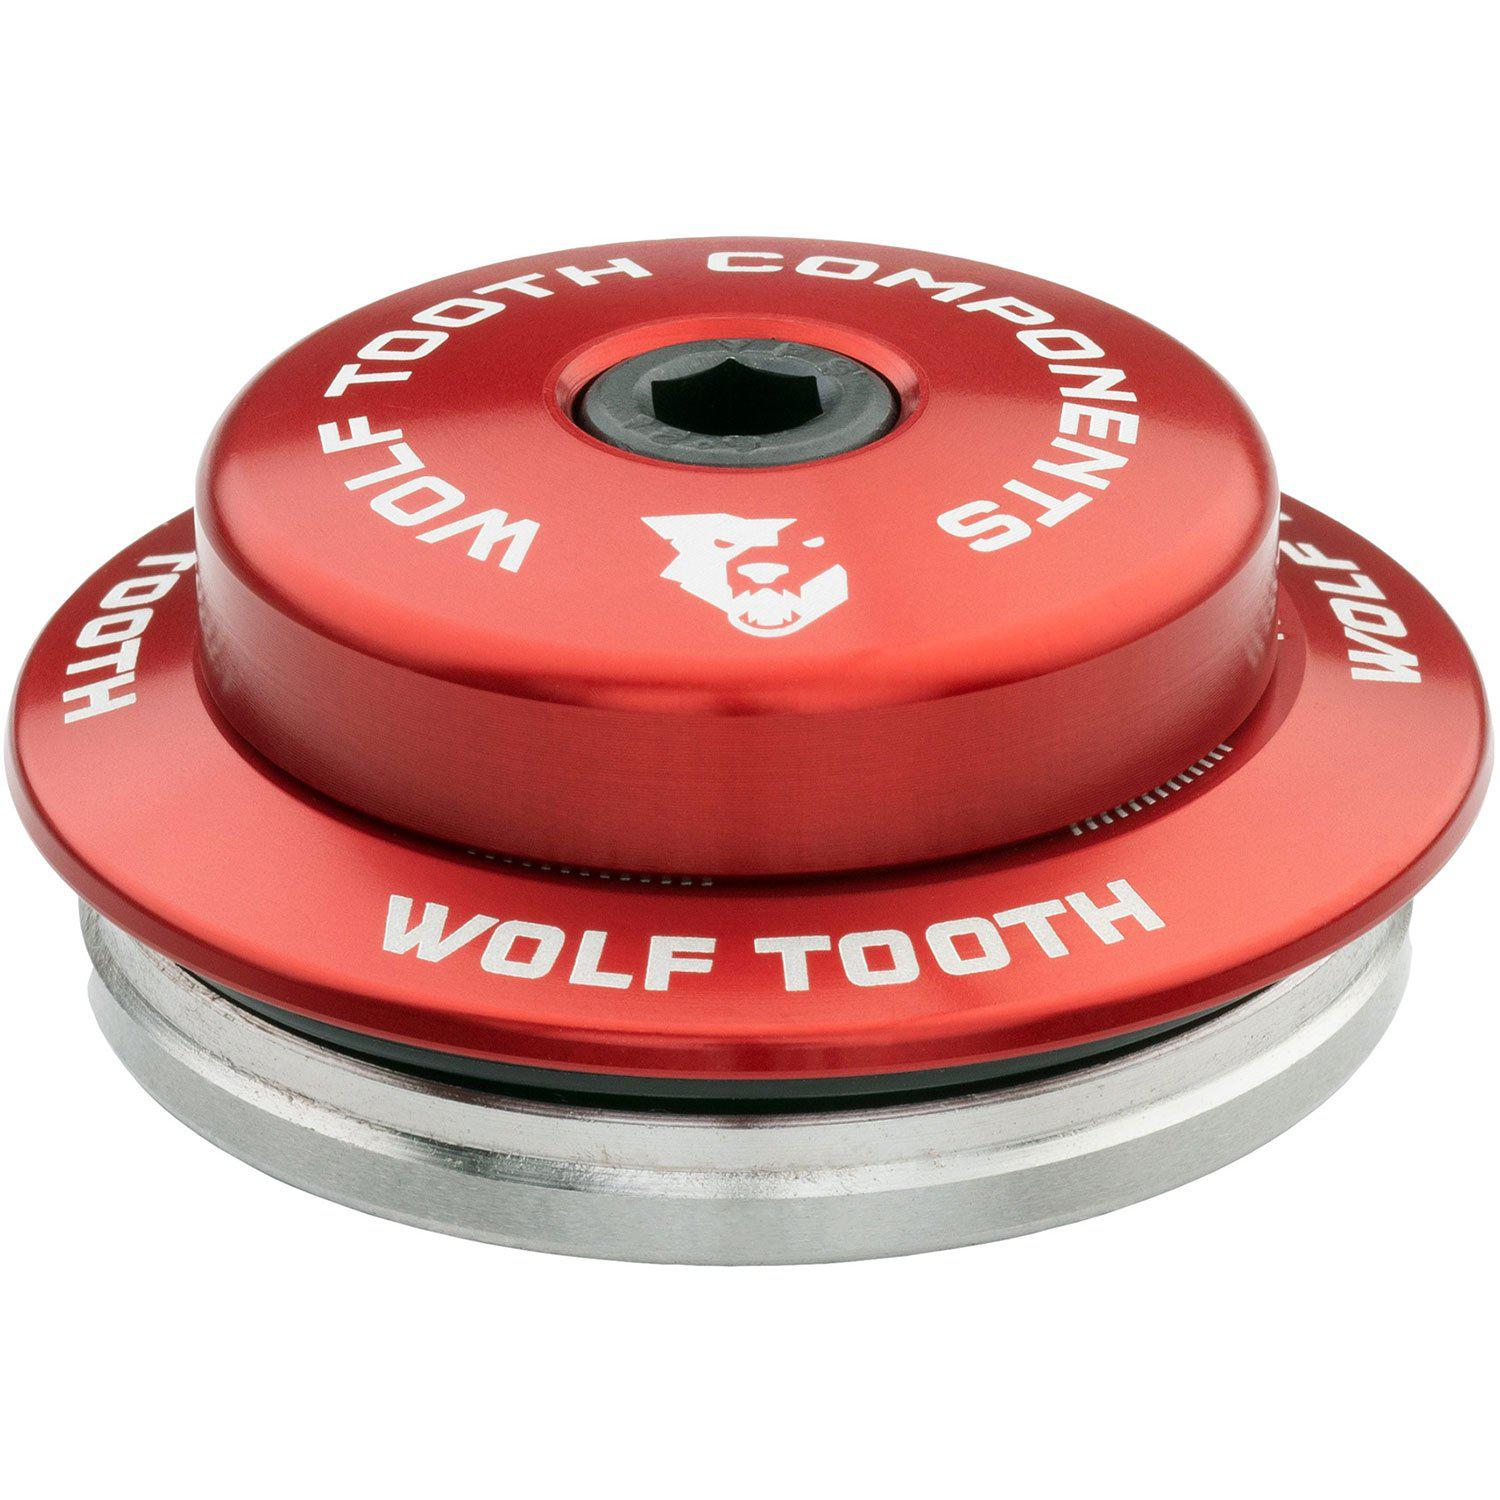 Wolf Tooth-Wolf Tooth Premium Integrated Standard Headset For Specialized-Red-IS42 Upper - 3mm Stack-WTIS42USPEC3MMRED-saddleback-elite-performance-cycling